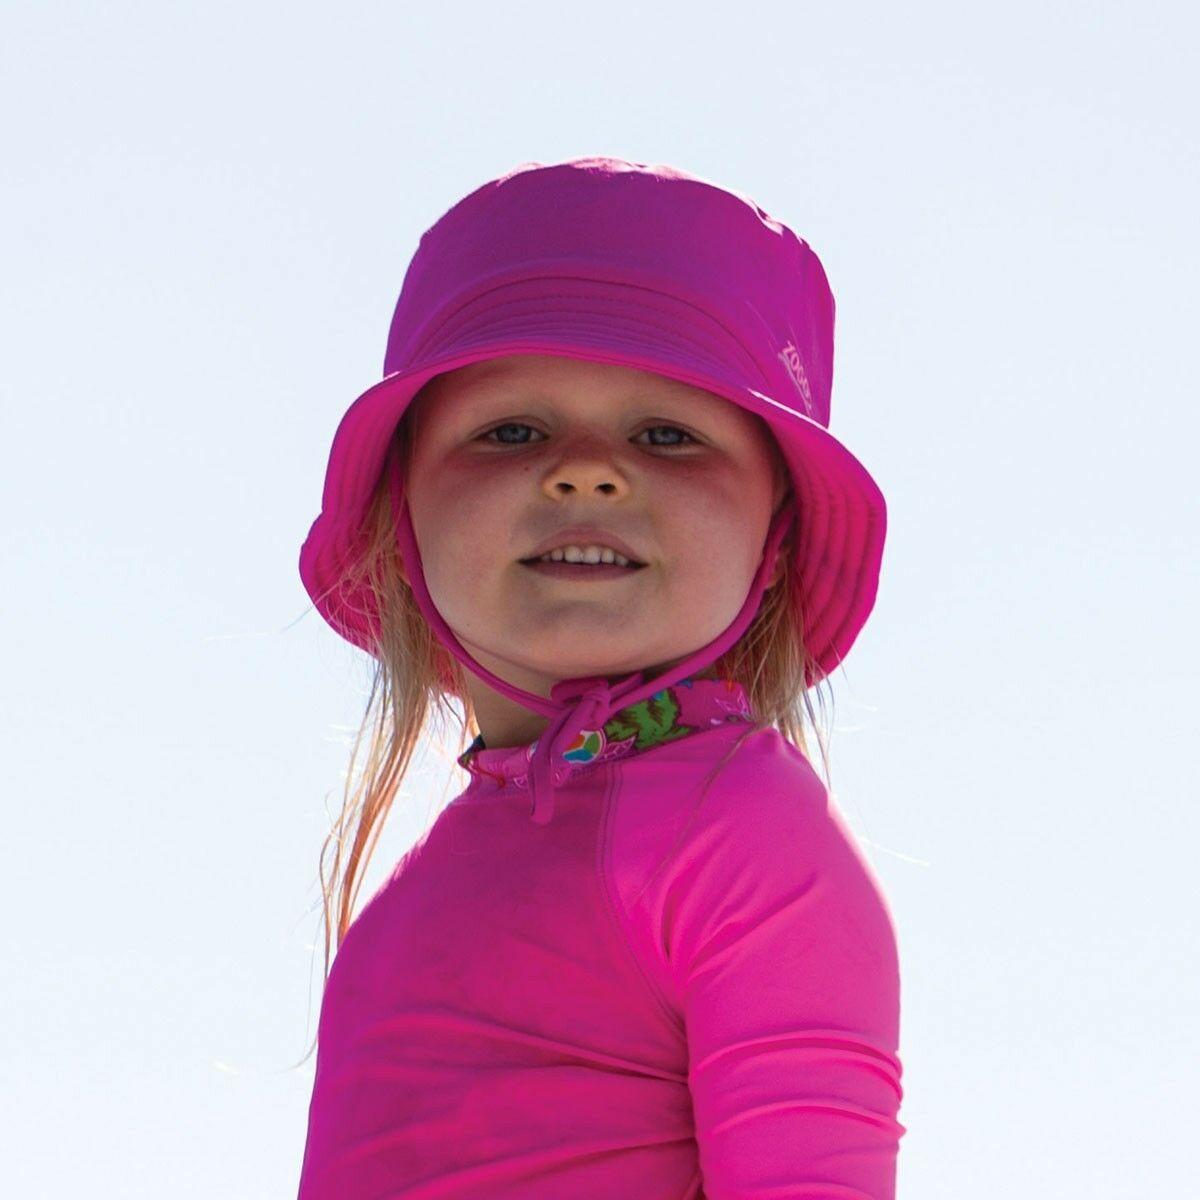 Details about New Zoggs Sun Bucket Hat In Navy   Pink - Swimming Hat For  Kids For Pool Swim 9ca86610295